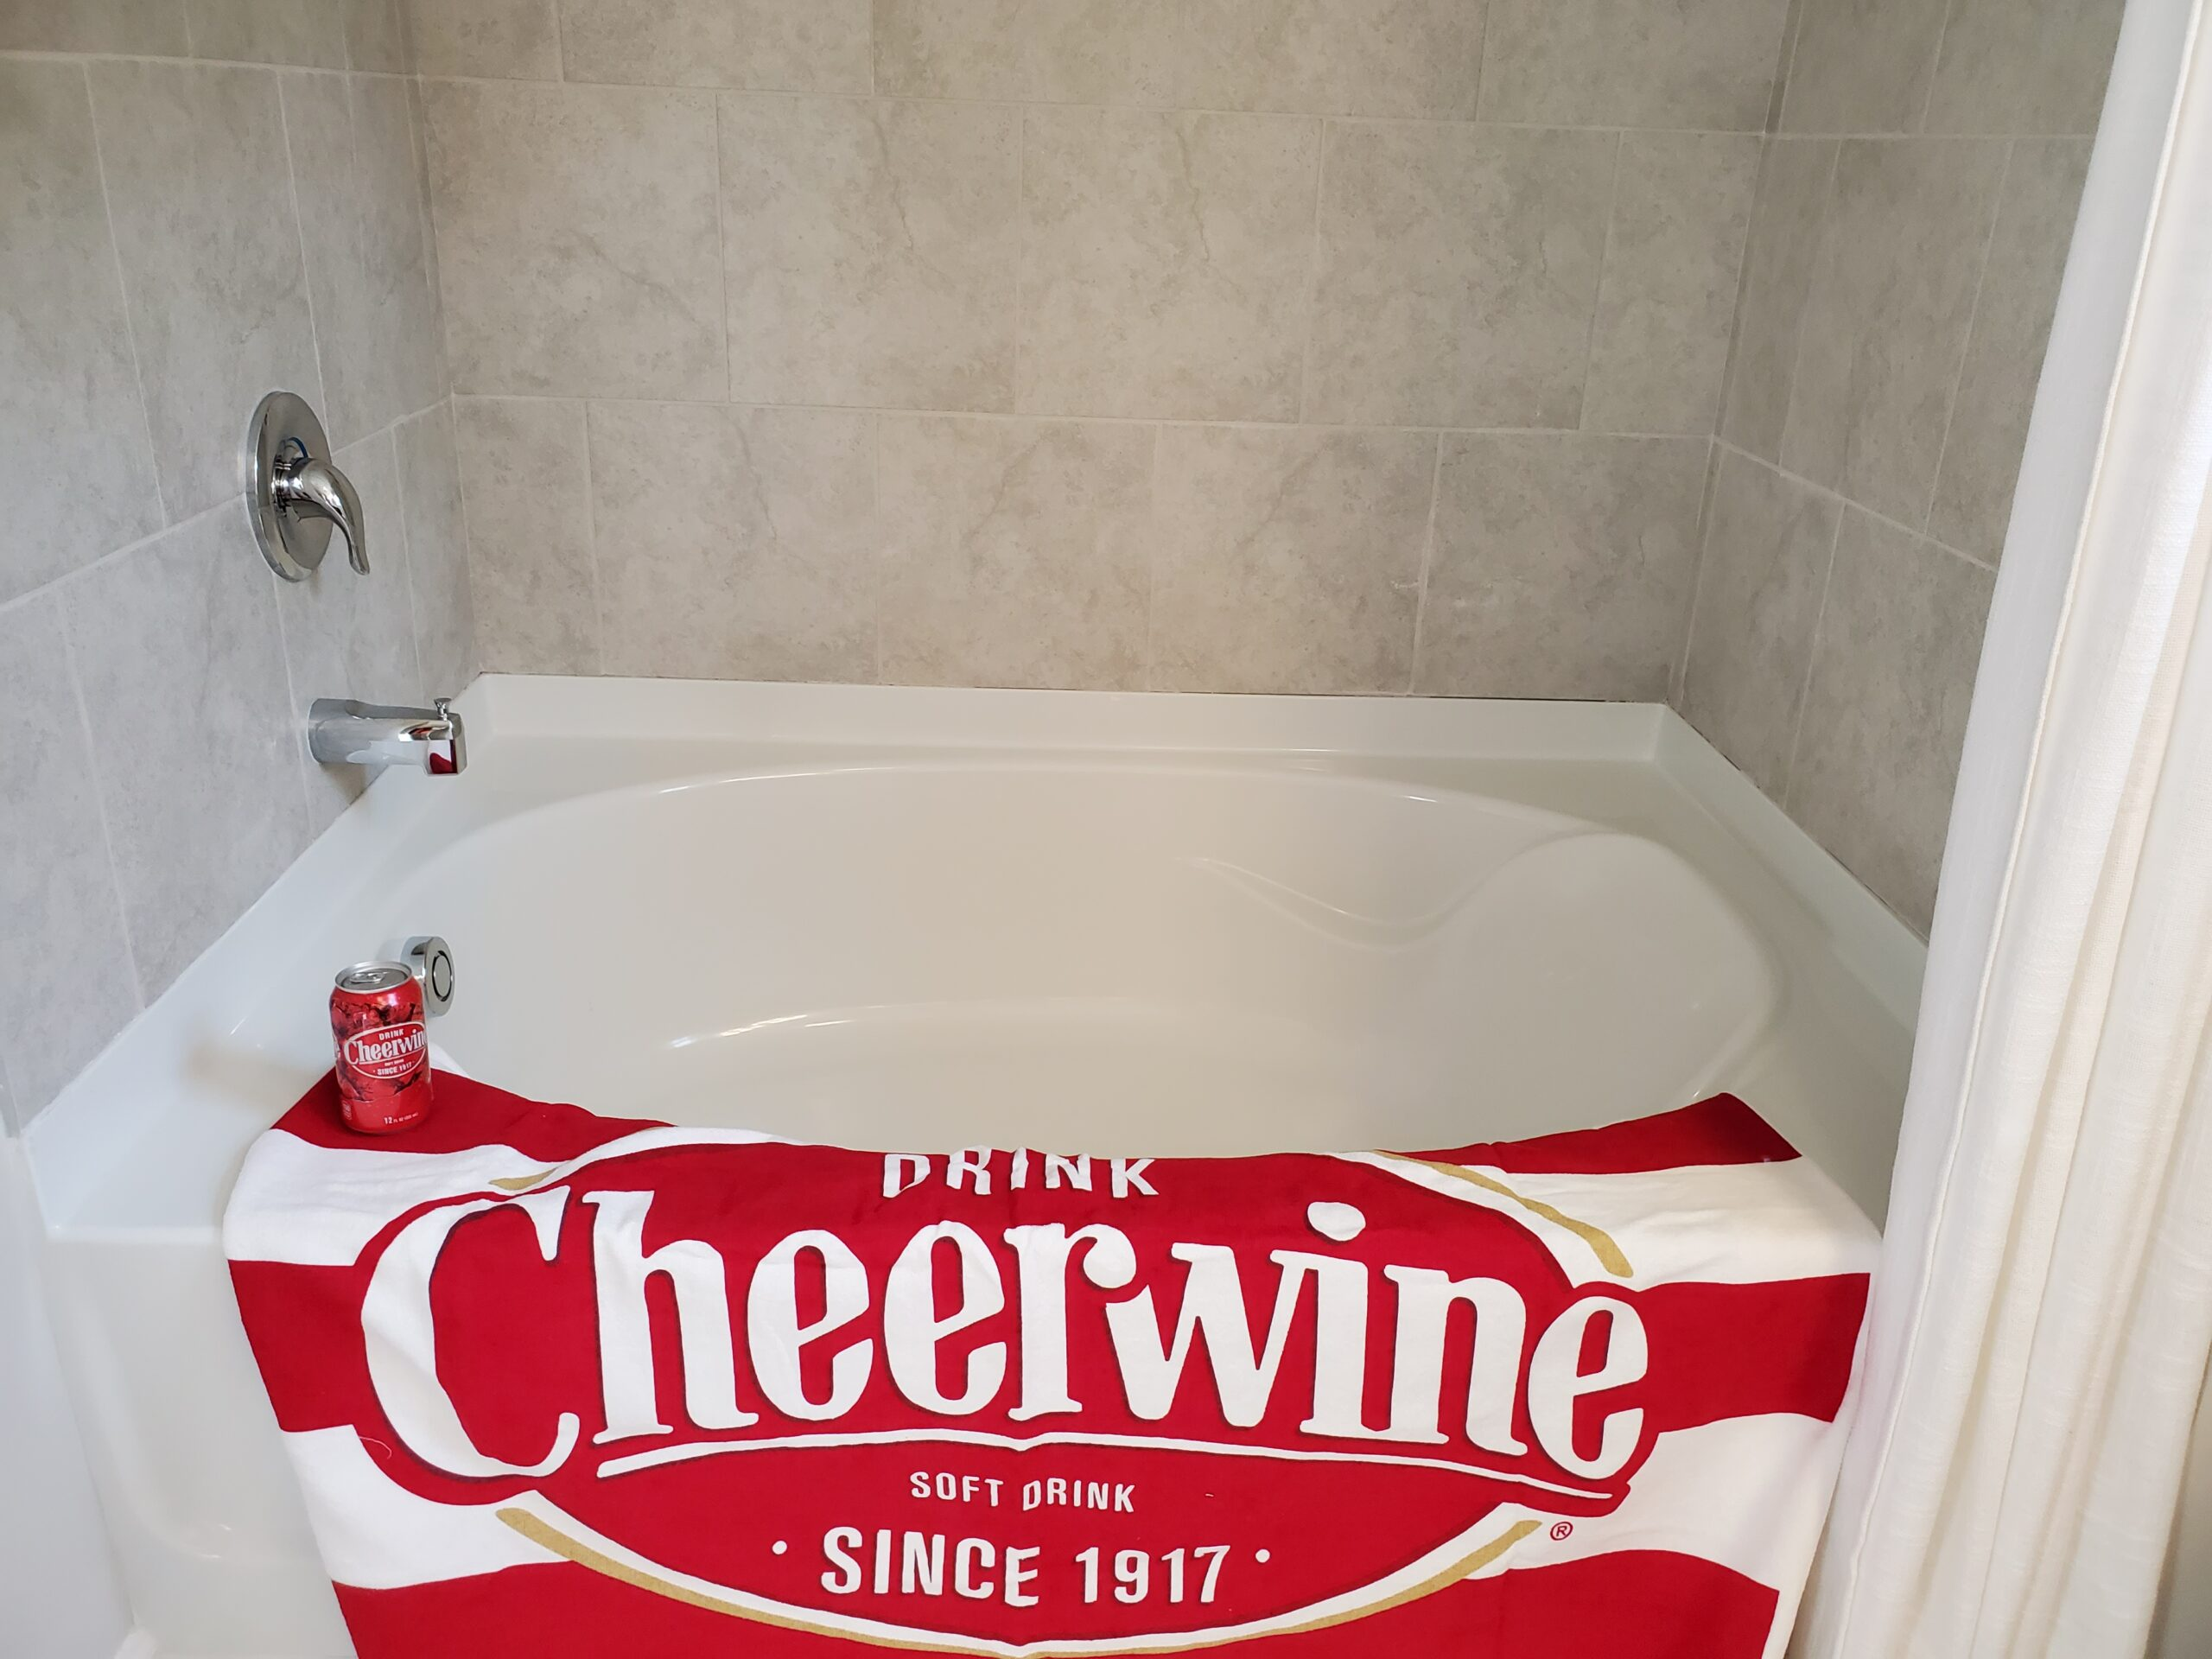 Cheerwine in the tub. Sip and soak.